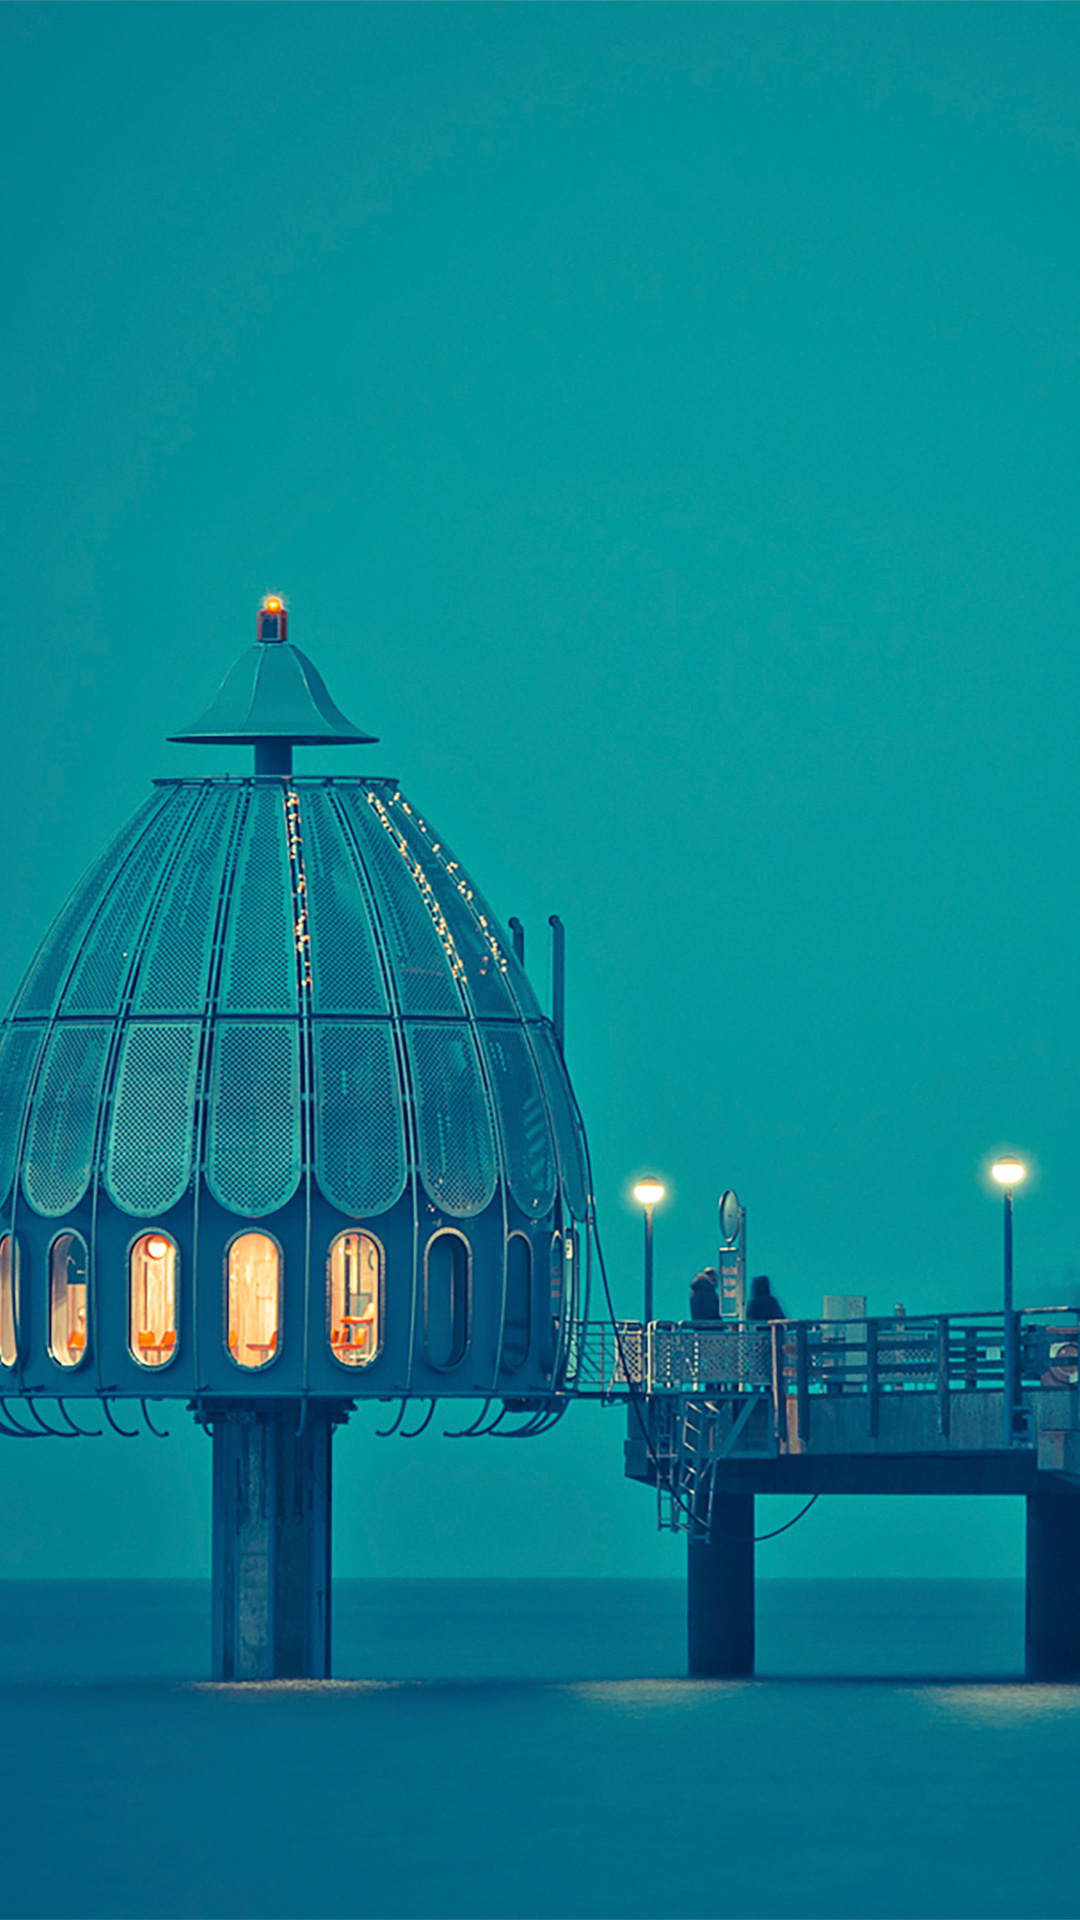 Free Diving Bell Off A Dock In Zingst, Germany phone wallpaper by zombozo